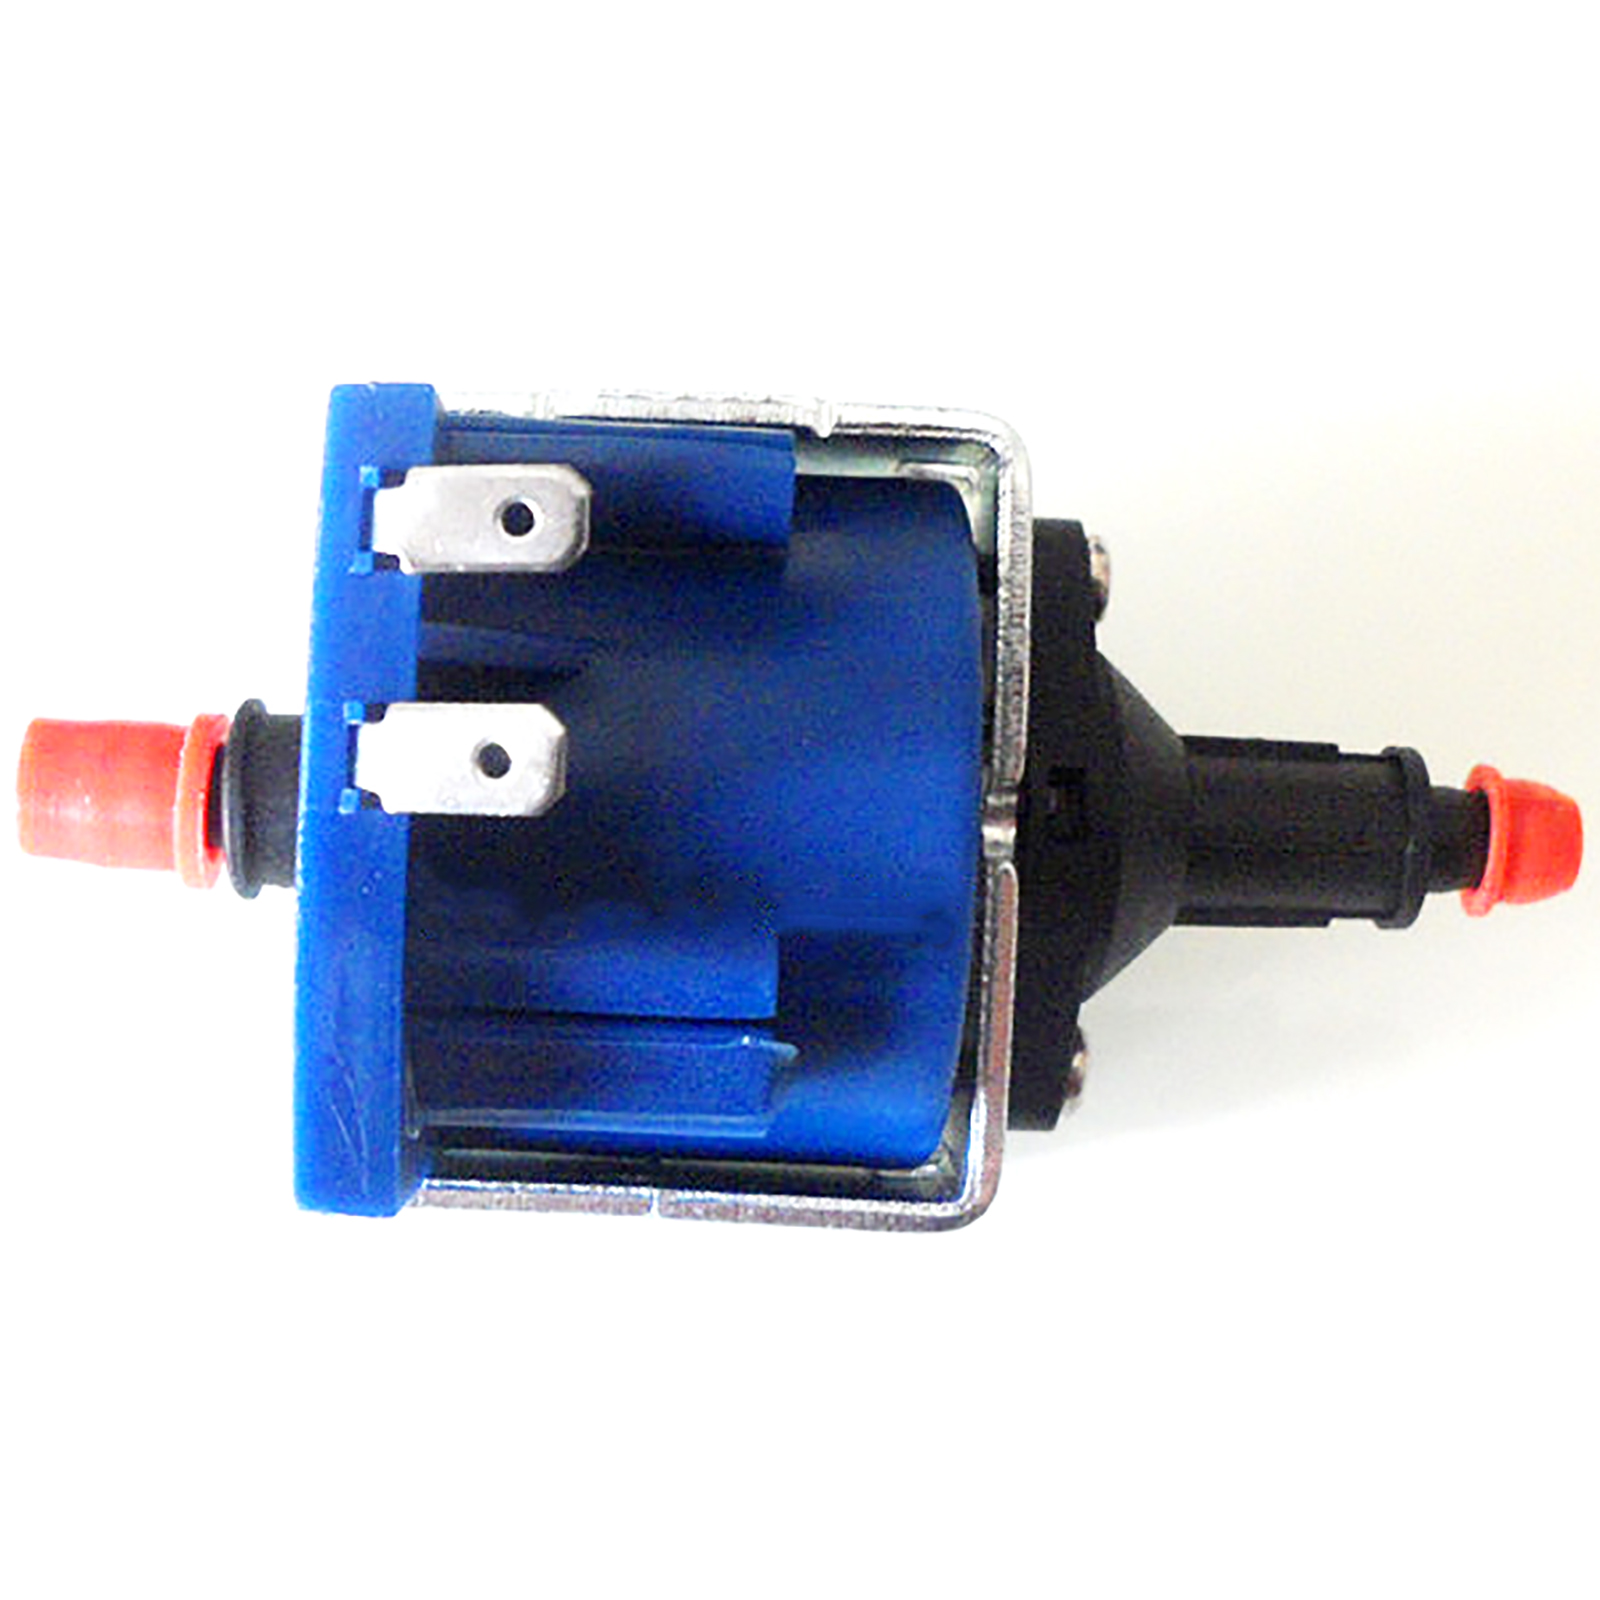 Replacement Eelectromagnetic Pump Valve JYPC-3 25W Suction Pump Repair Parts For Steam Hanging And Ironing Machine